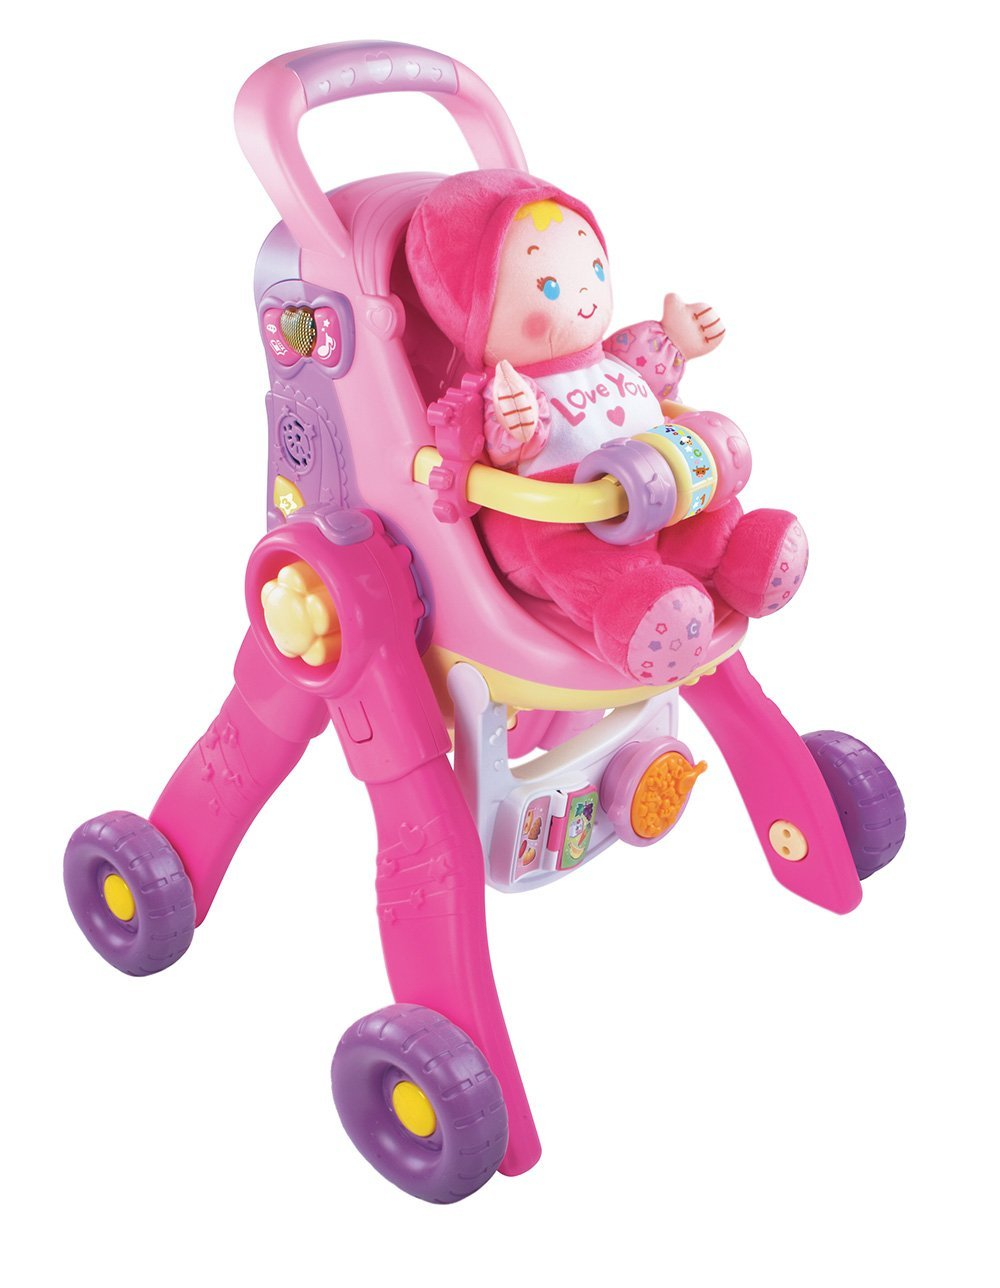 VTech Baby Amaze 3-in-1 Care and Learn Stroller Stroll-Along Walker in Pastel Pink and Purple Great for Baby Girls